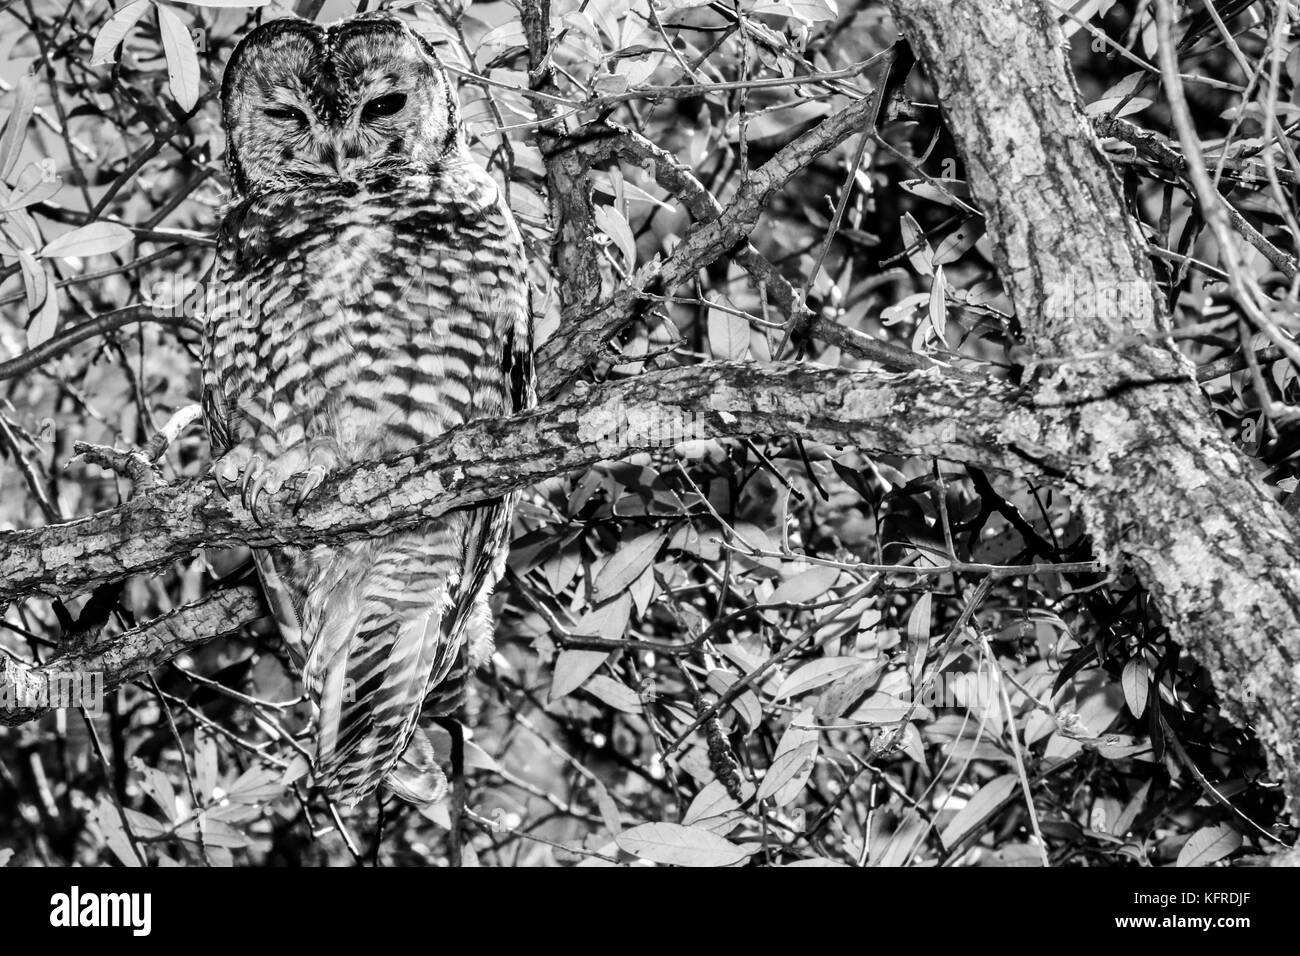 Mexican spotted owl or Strix occidentalis lucida, very difficult to find.   Madrense Discovery Expedition. - Stock Image